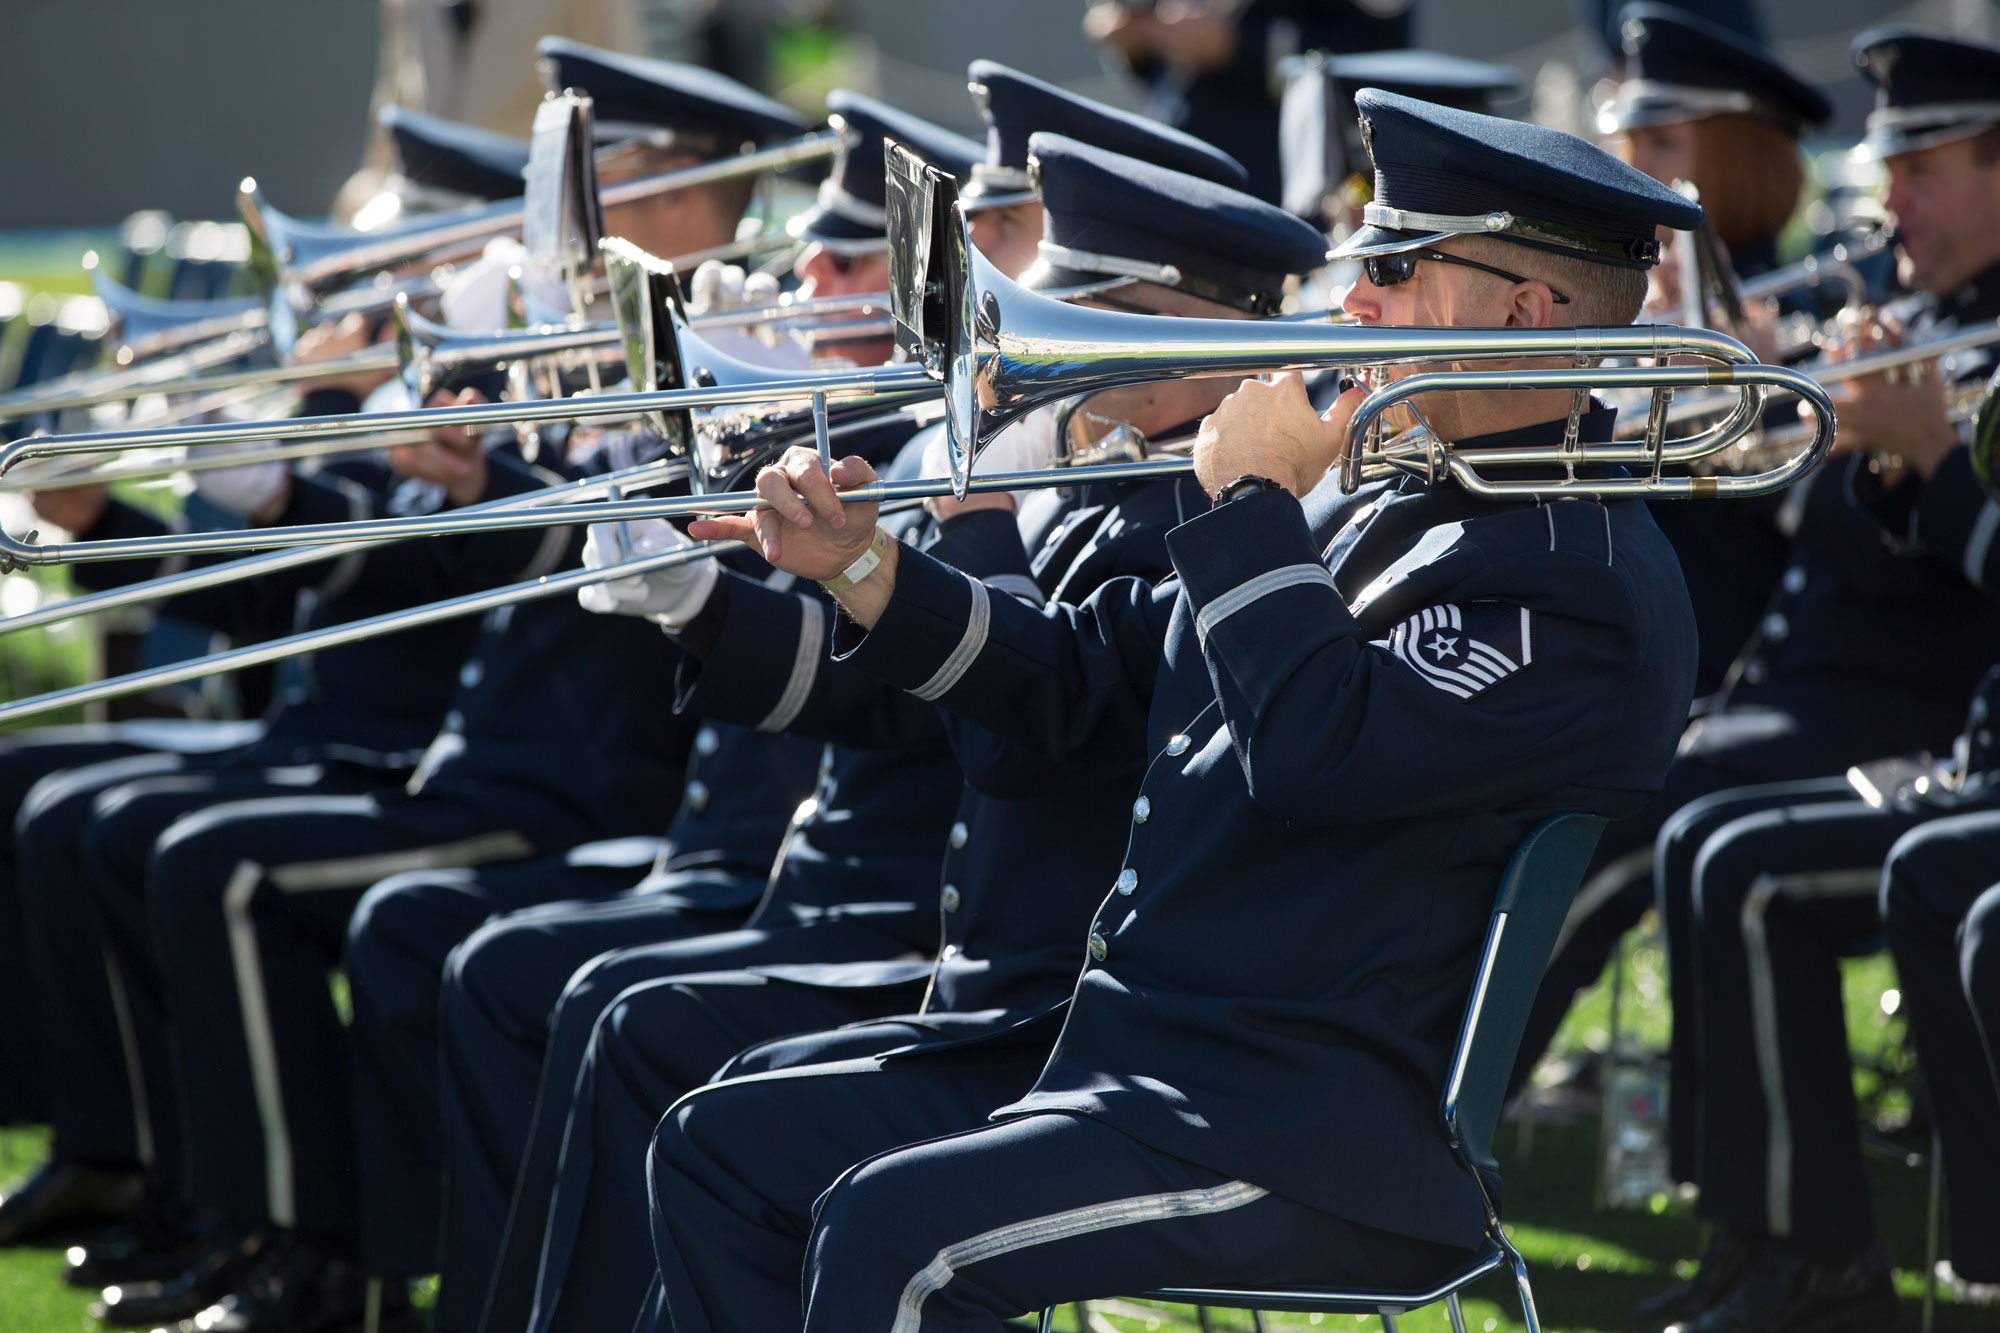 Photo: Air Force Academy graduation 2019 band